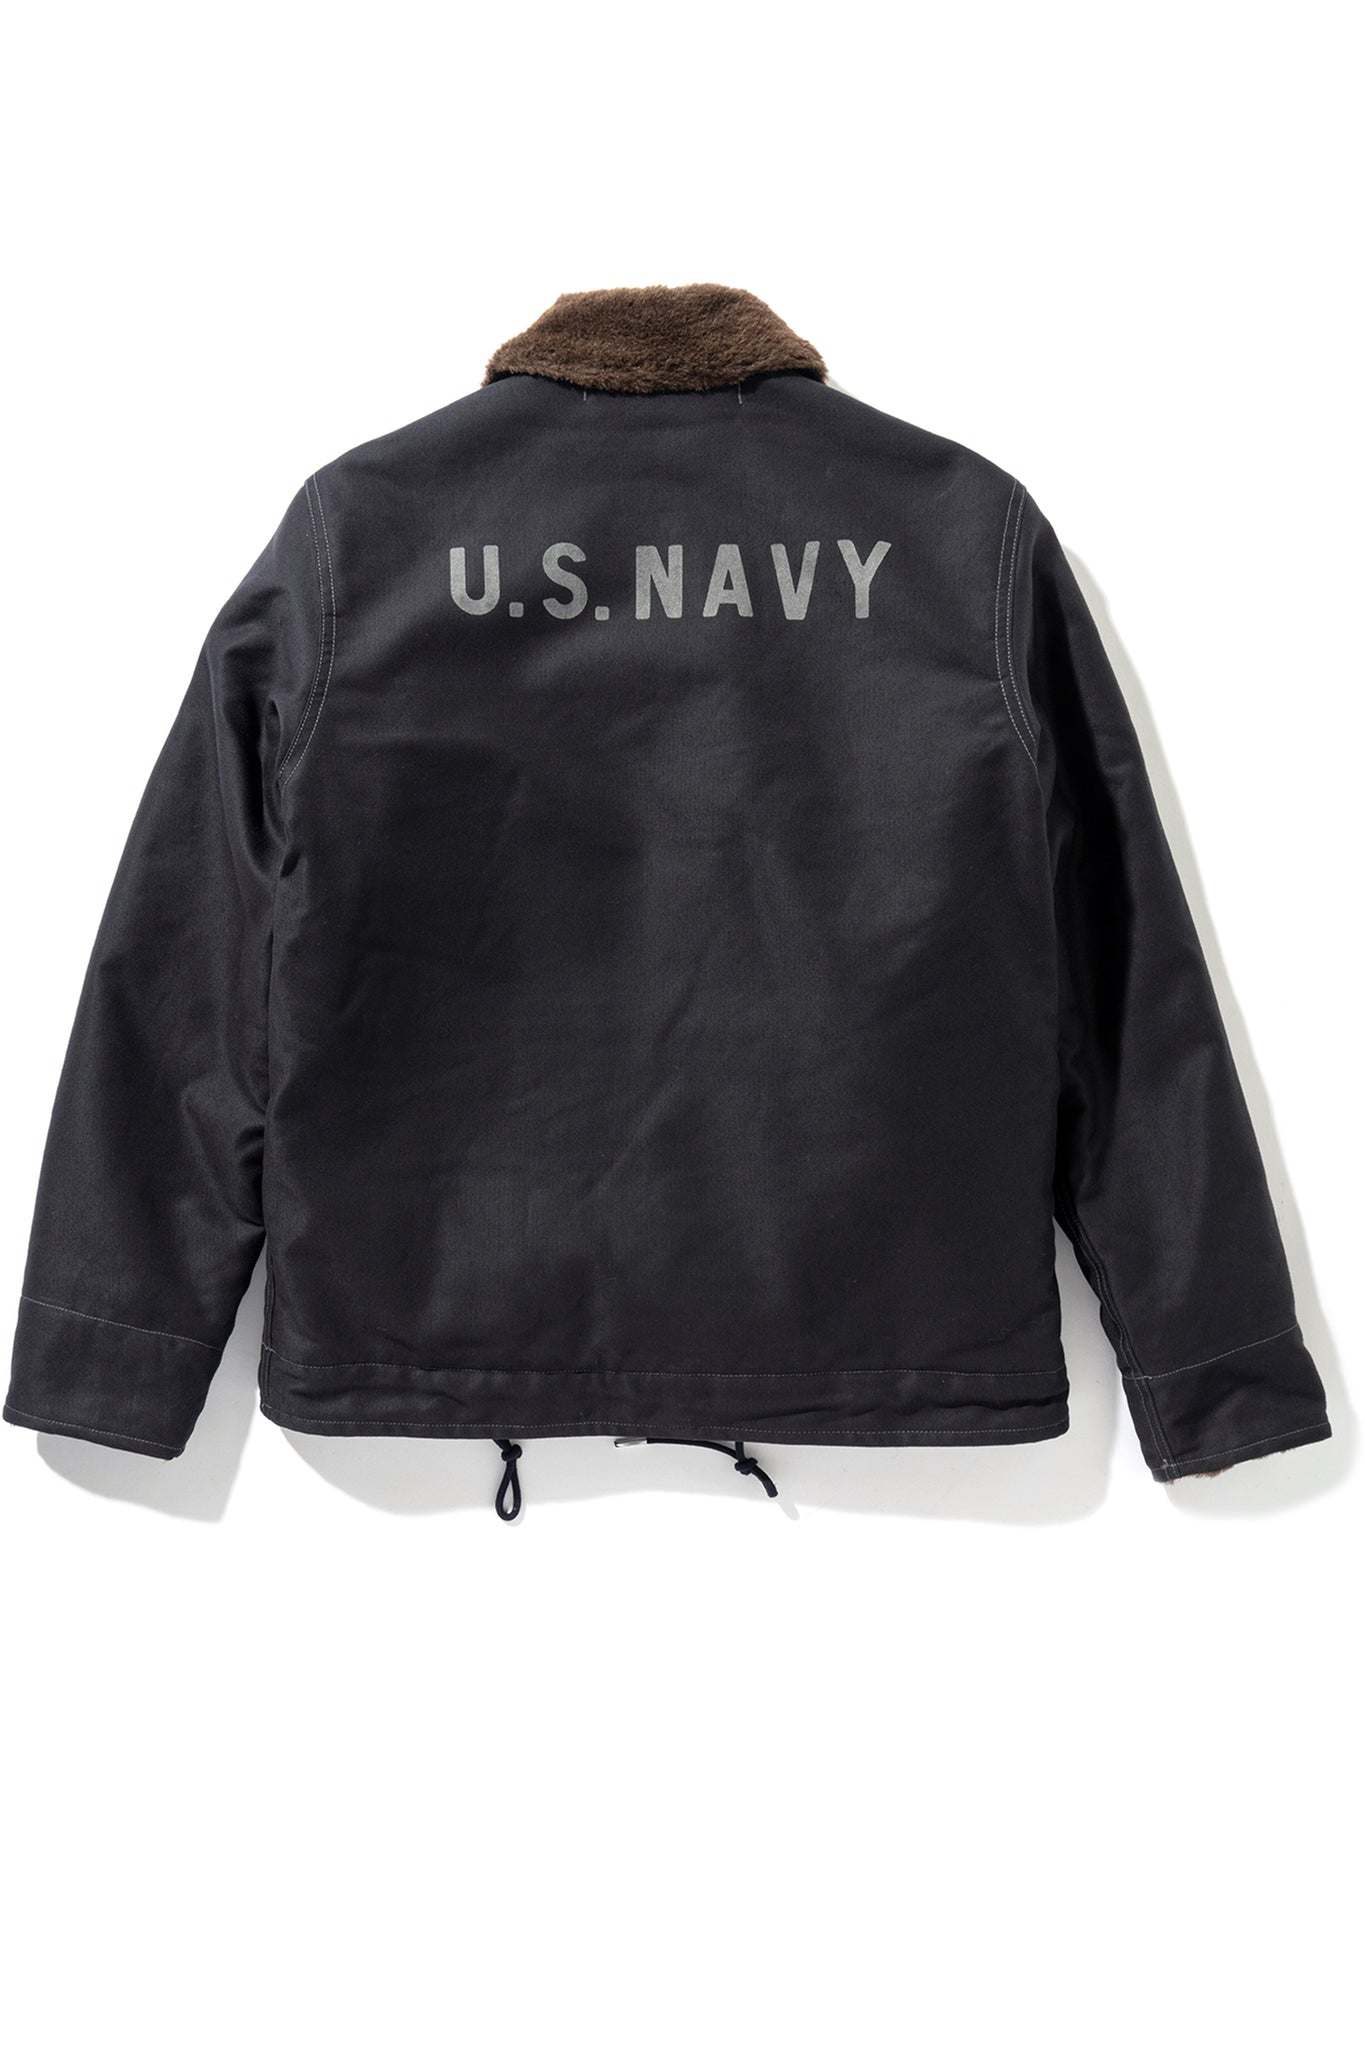 N-1 DECK JACKET (NAVY STENCIL)